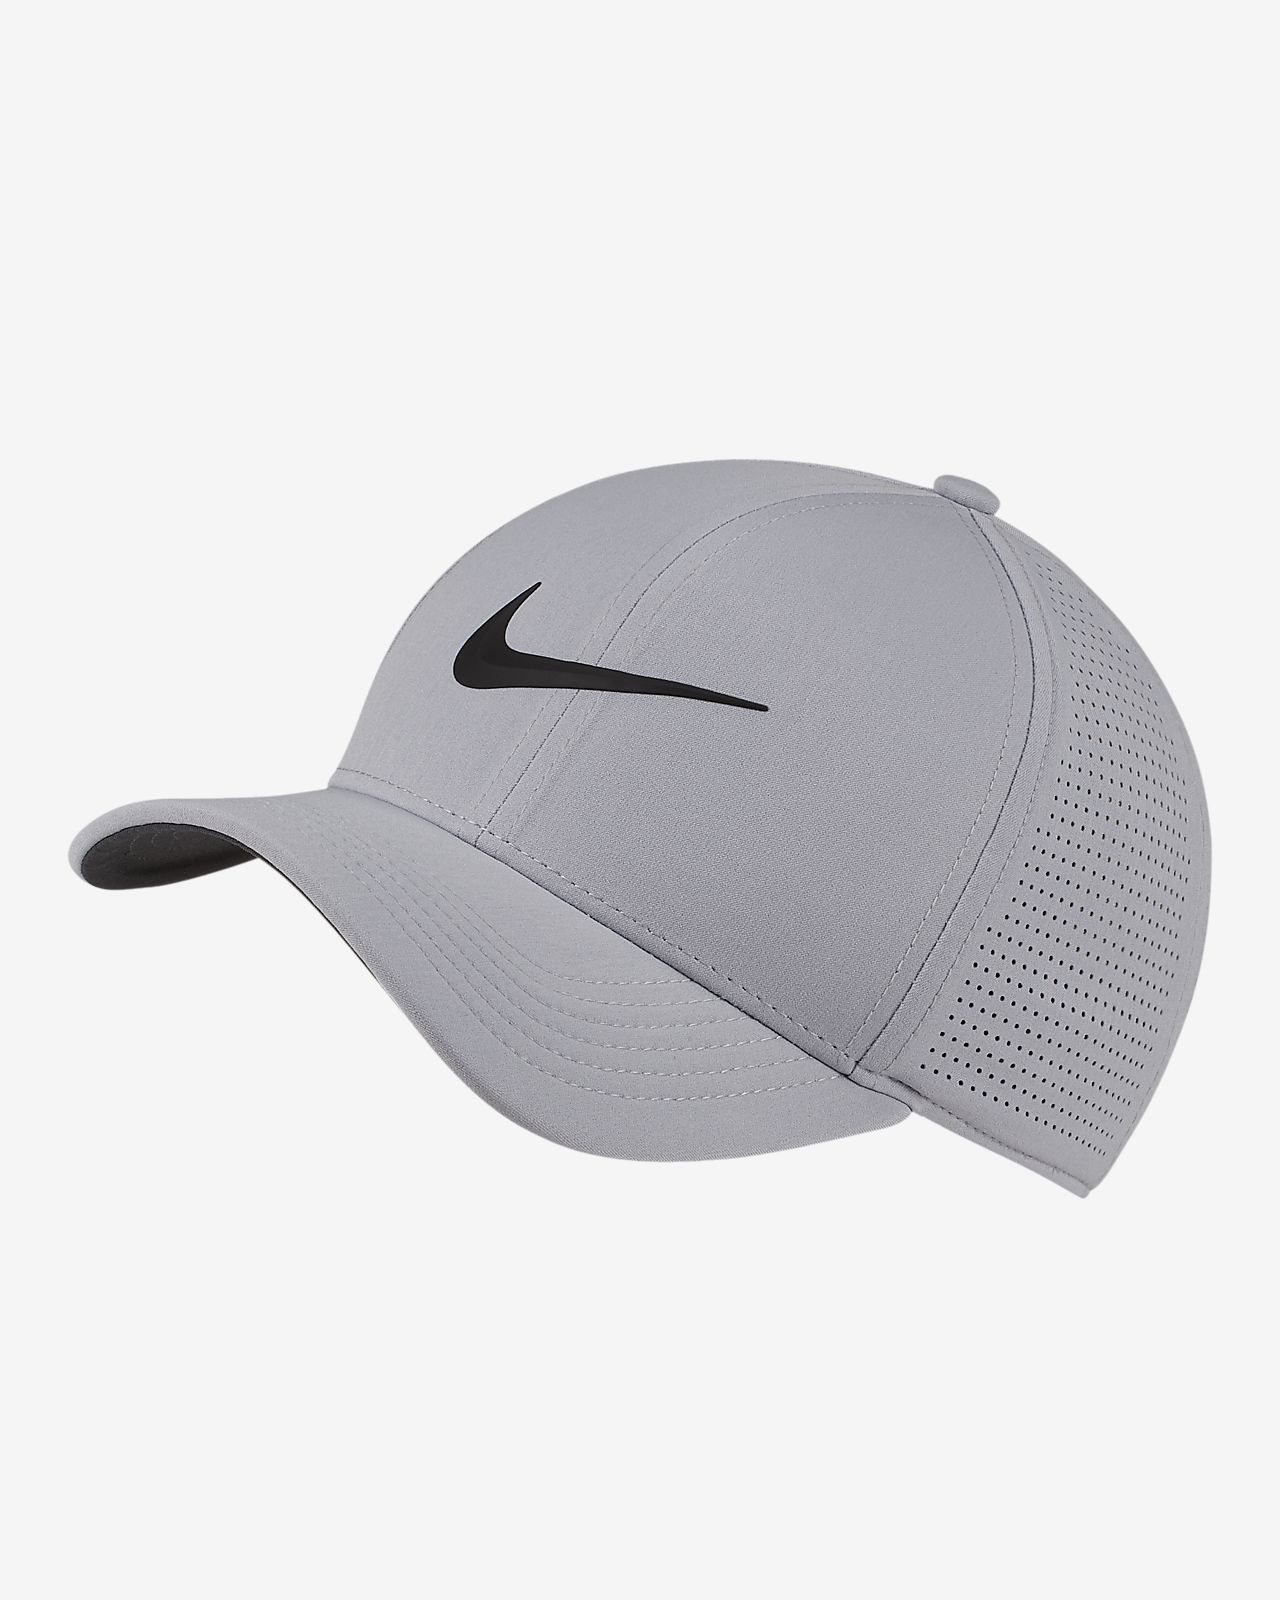 f252fa94 Nike AeroBill Classic 99 Fitted Golf Hat. Nike.com GB